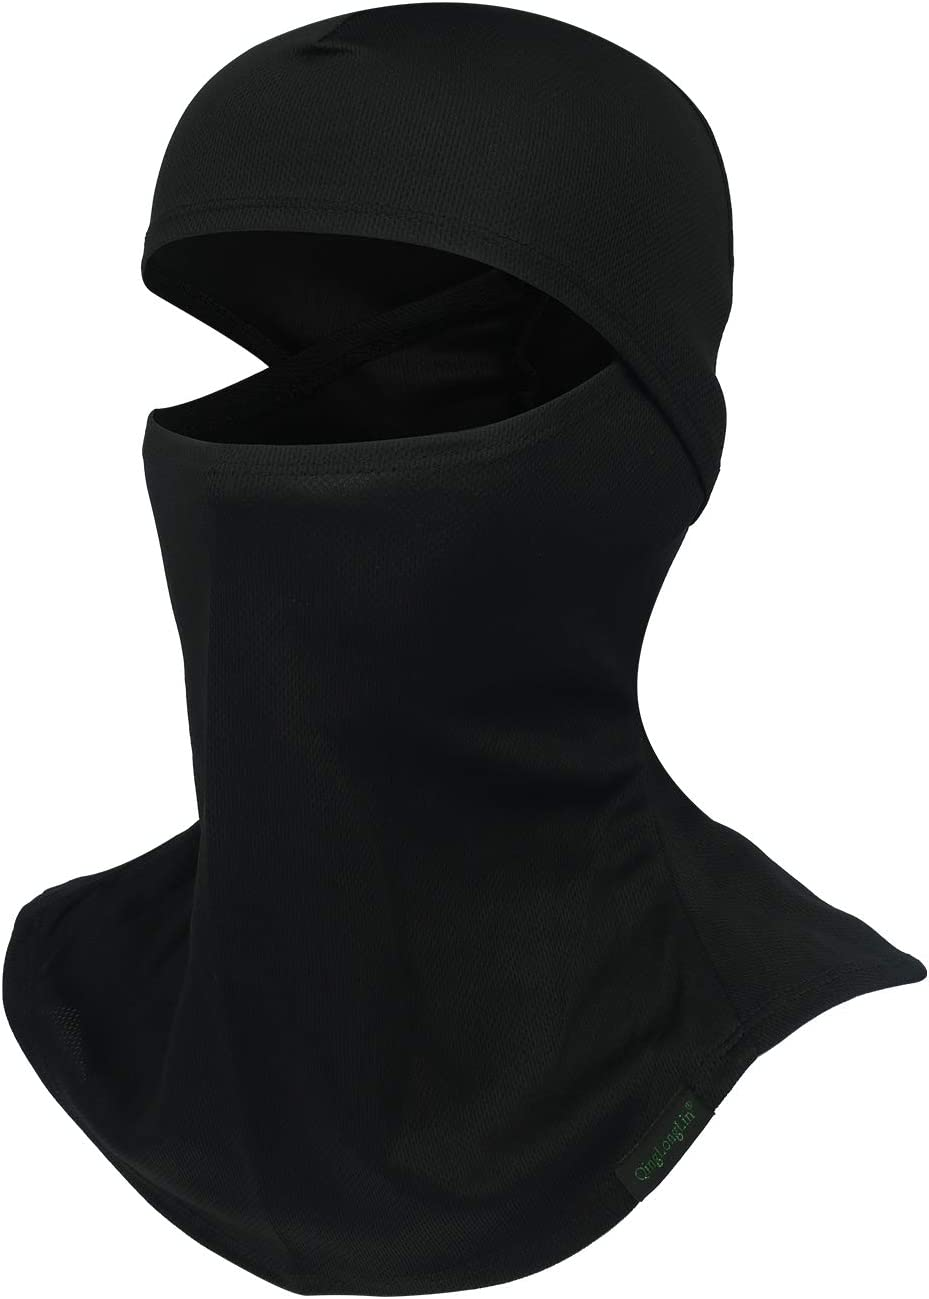 Details about  /Velvet Thicken Warm Windproof Cap Motorcycle Helmet Full Face Cover Balaclava